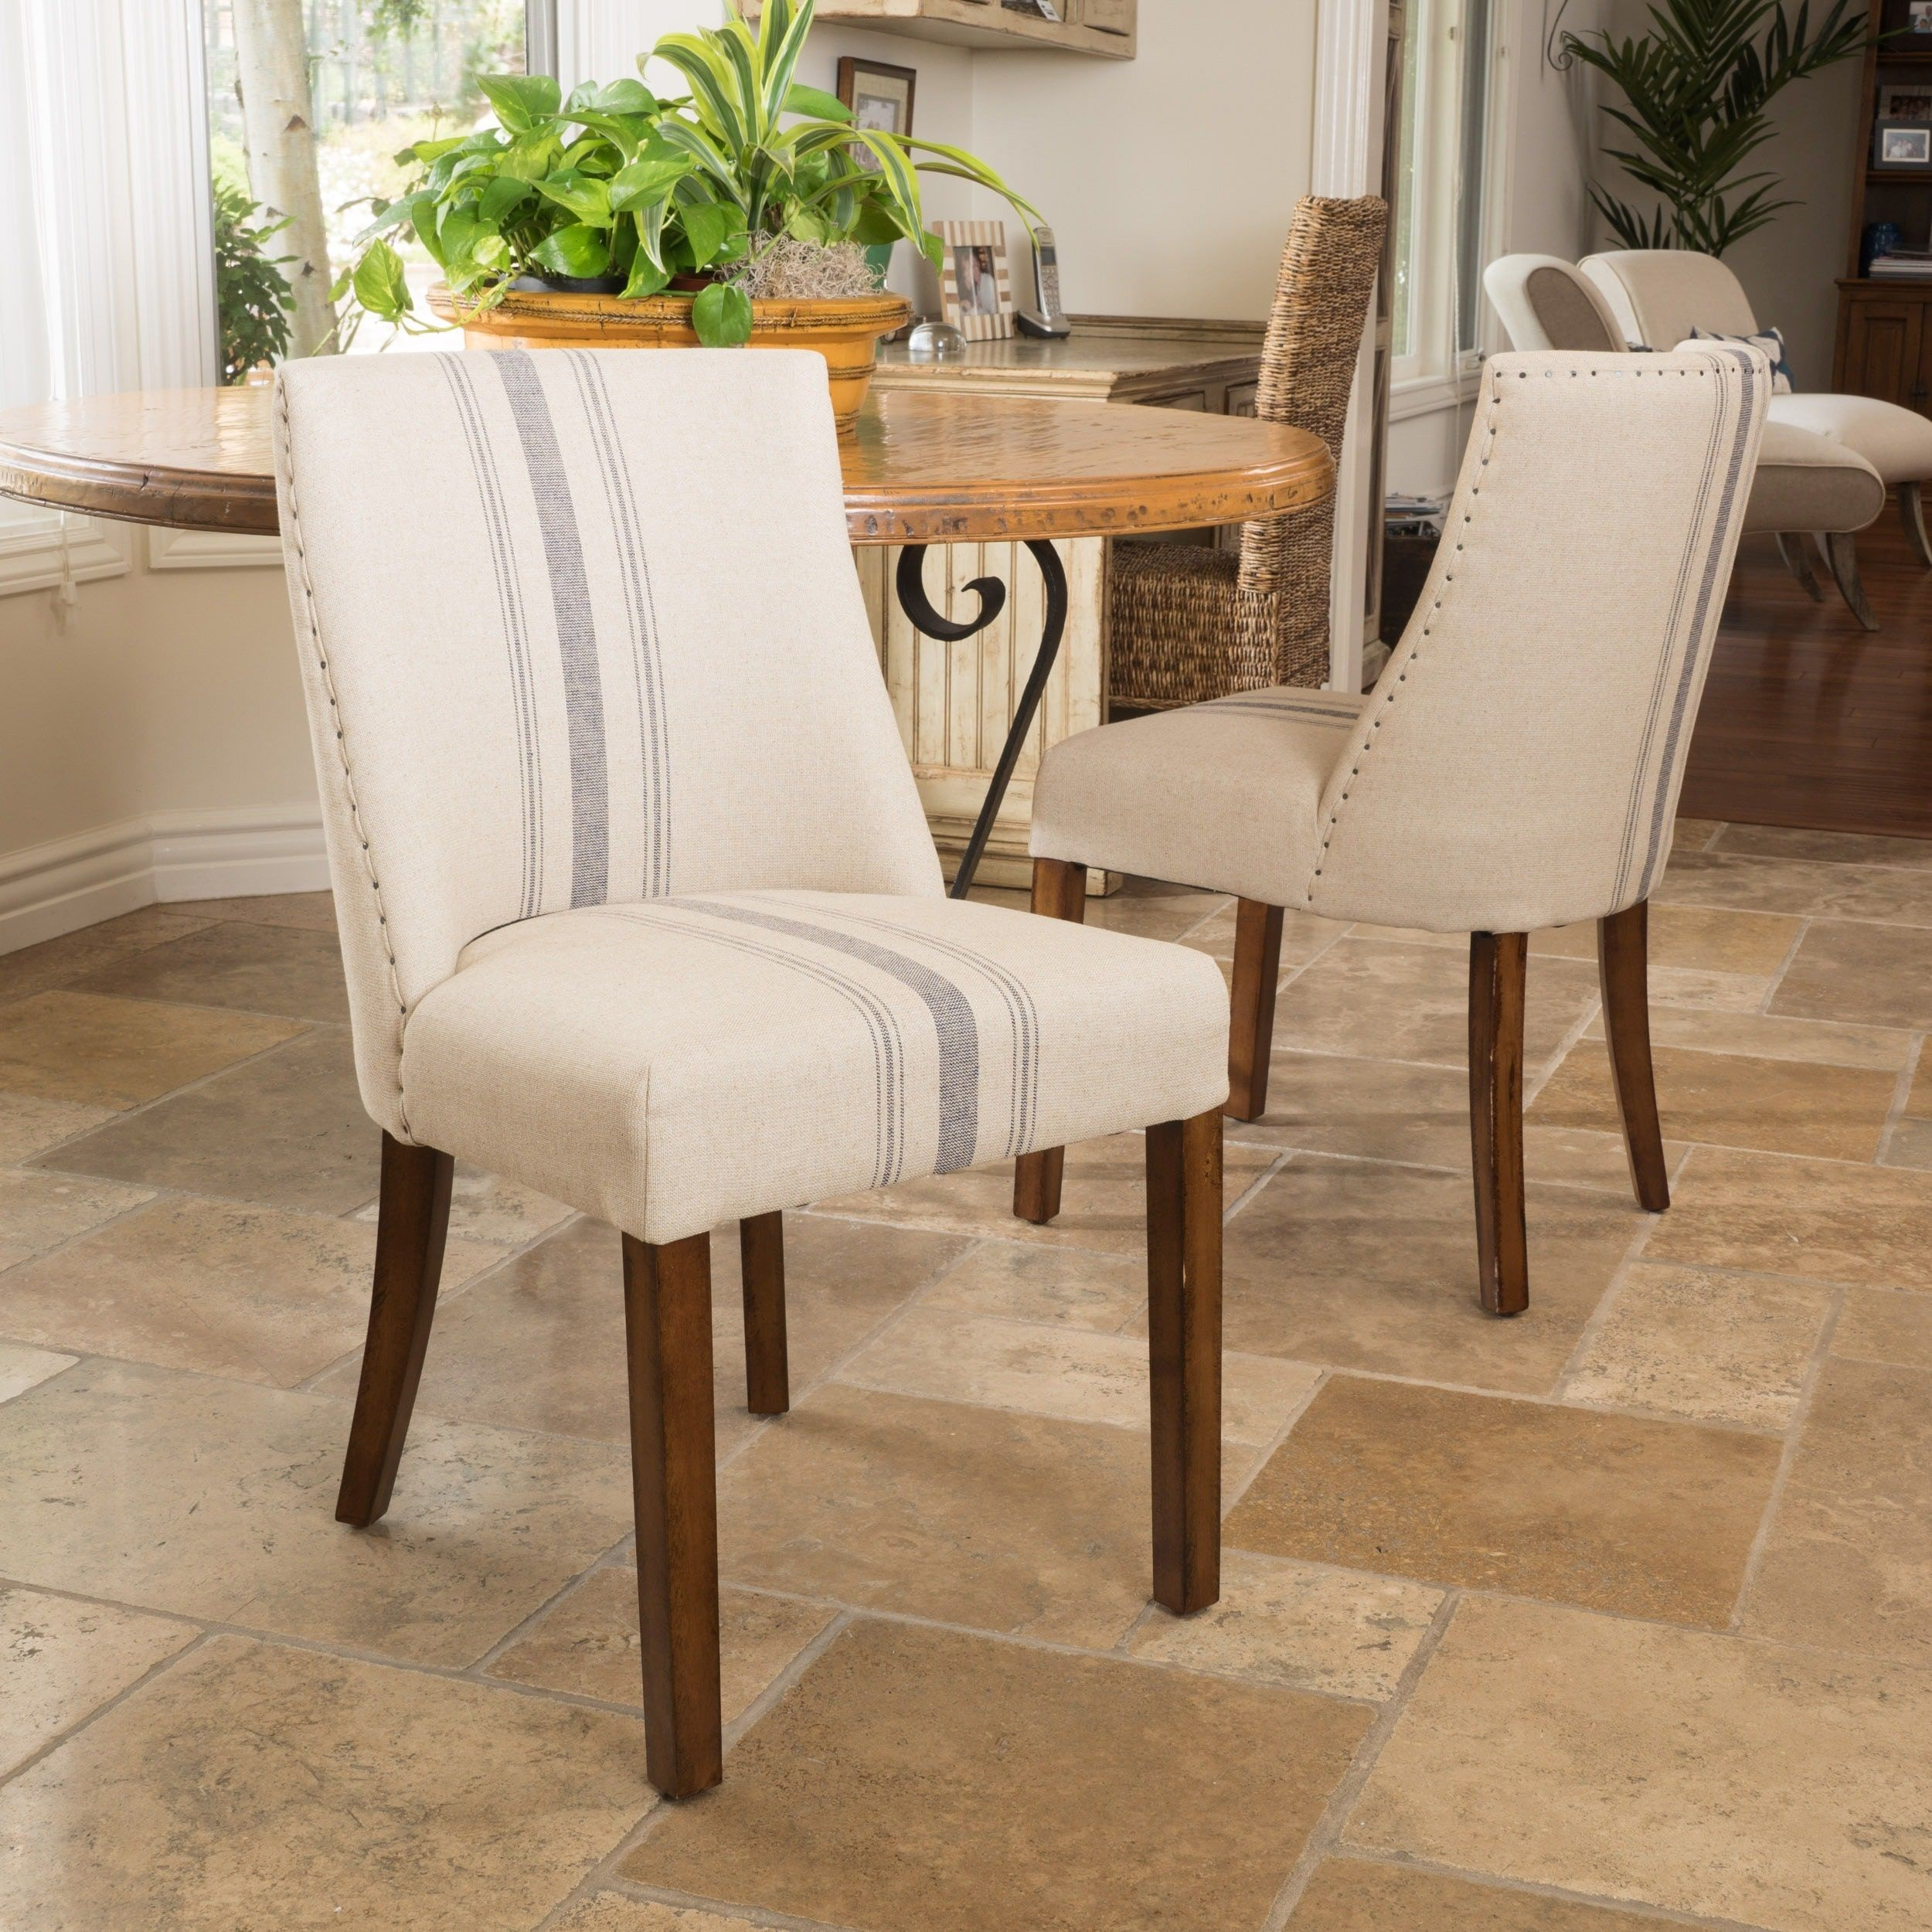 $305 99 Kitchen Dining Room Chairs price per set of 2